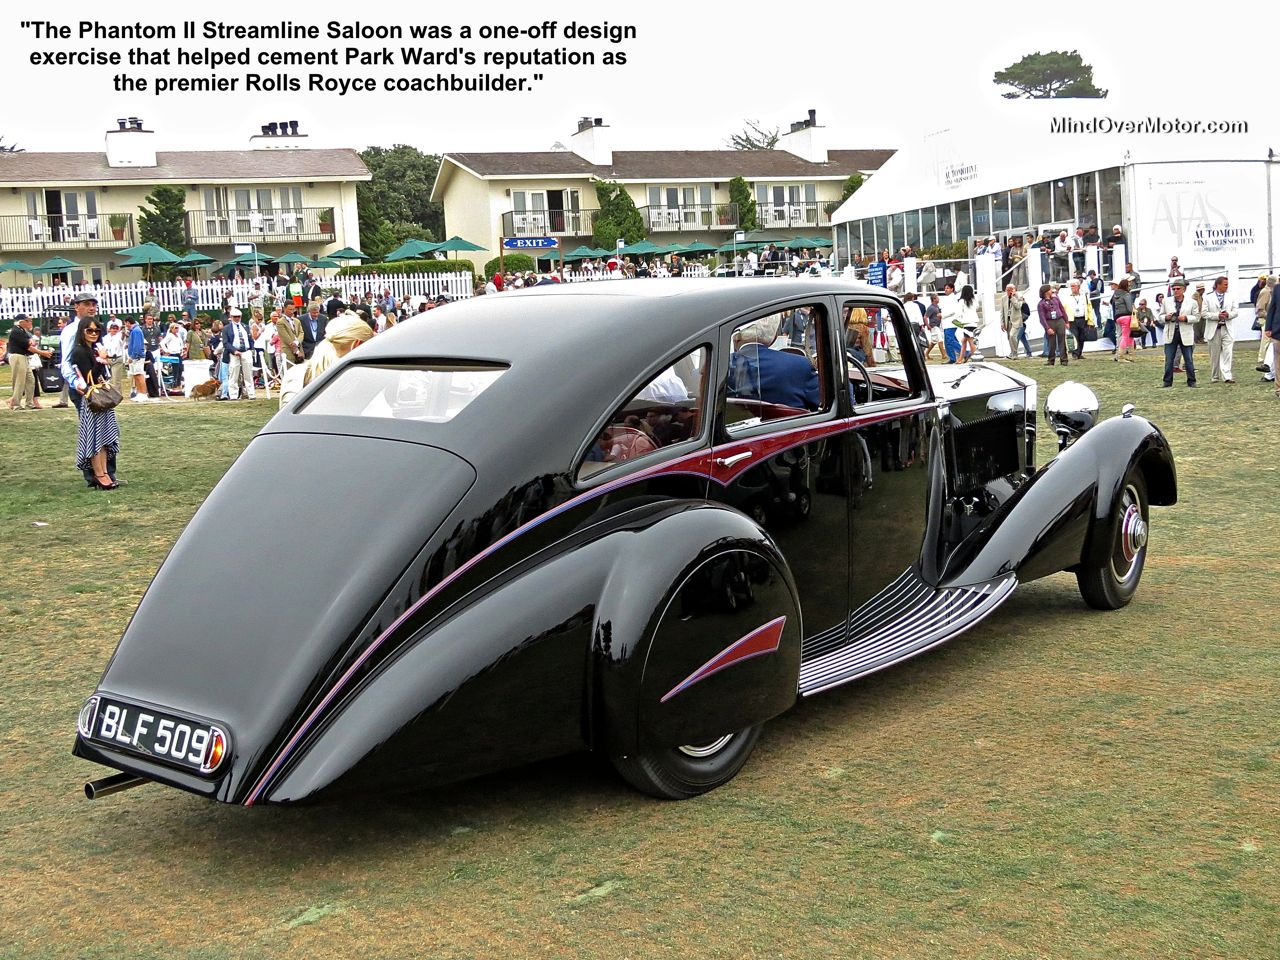 Rolls Royce Phantom II Streamline Saloon by Park Ward at Pebble Beach